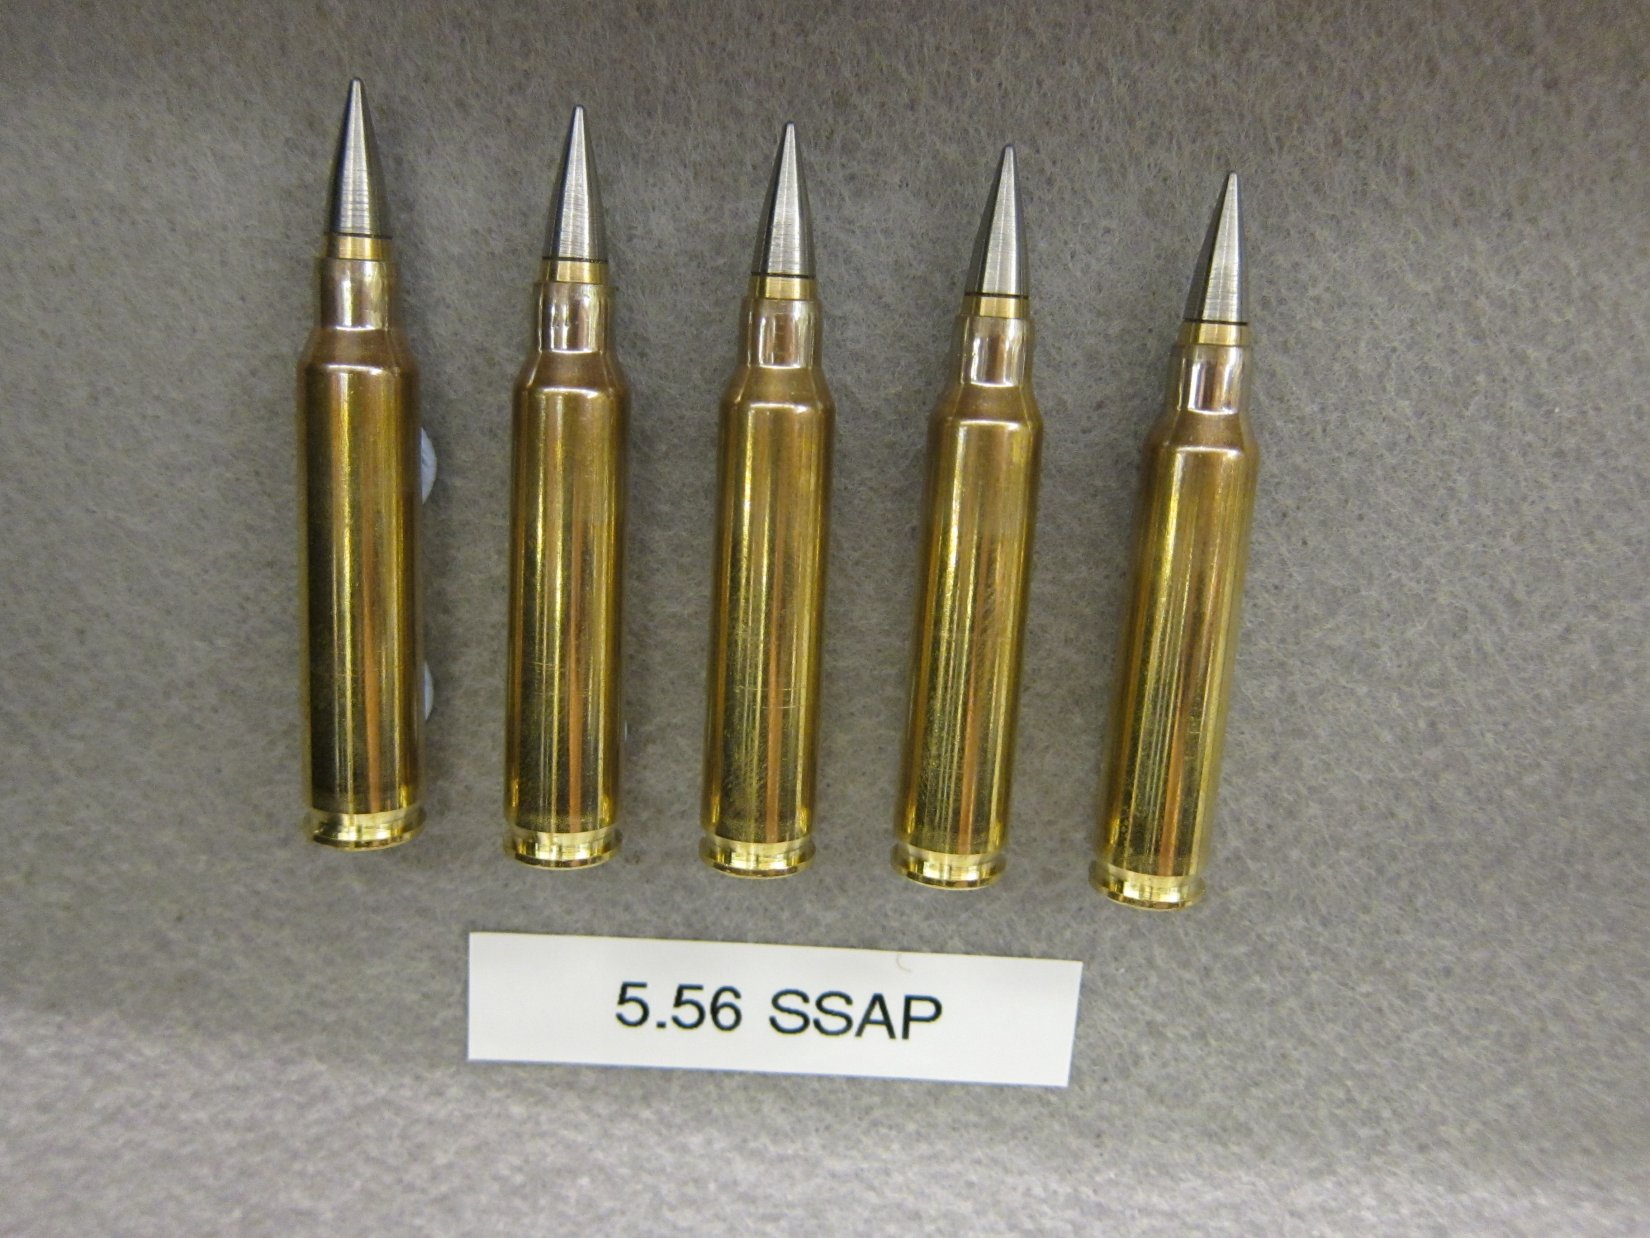 DSG Technology PNW Arms Super Sniper Ammunition SSA formerly Enhanced Performance Sniper EPR Super Sniper Tactical SST and Super Sniper Armor Piercing SSAP Rounds NDIA Joint Armaments 2012 DefenseReview.com DR 4 DSG Technology/PNW Arms Super Sniper Ammunition (SSA) Enhanced Range Rifle Ammo Being Made in the USA for Military Special Operations Forces (SOF) Long Range Interdiction/Sniping and Close Quarters Battle/Close Quarters Combat (CQB/CQC) Applications: Solid Copper Super Sniper Tactical (SST) Rounds/Bullets and Tungsten Tipped Super Sniper Armor Piercing/Armor Penatrating (SSAP) AP Rounds/Bullets in All Military NATO Calibers! (Video!)